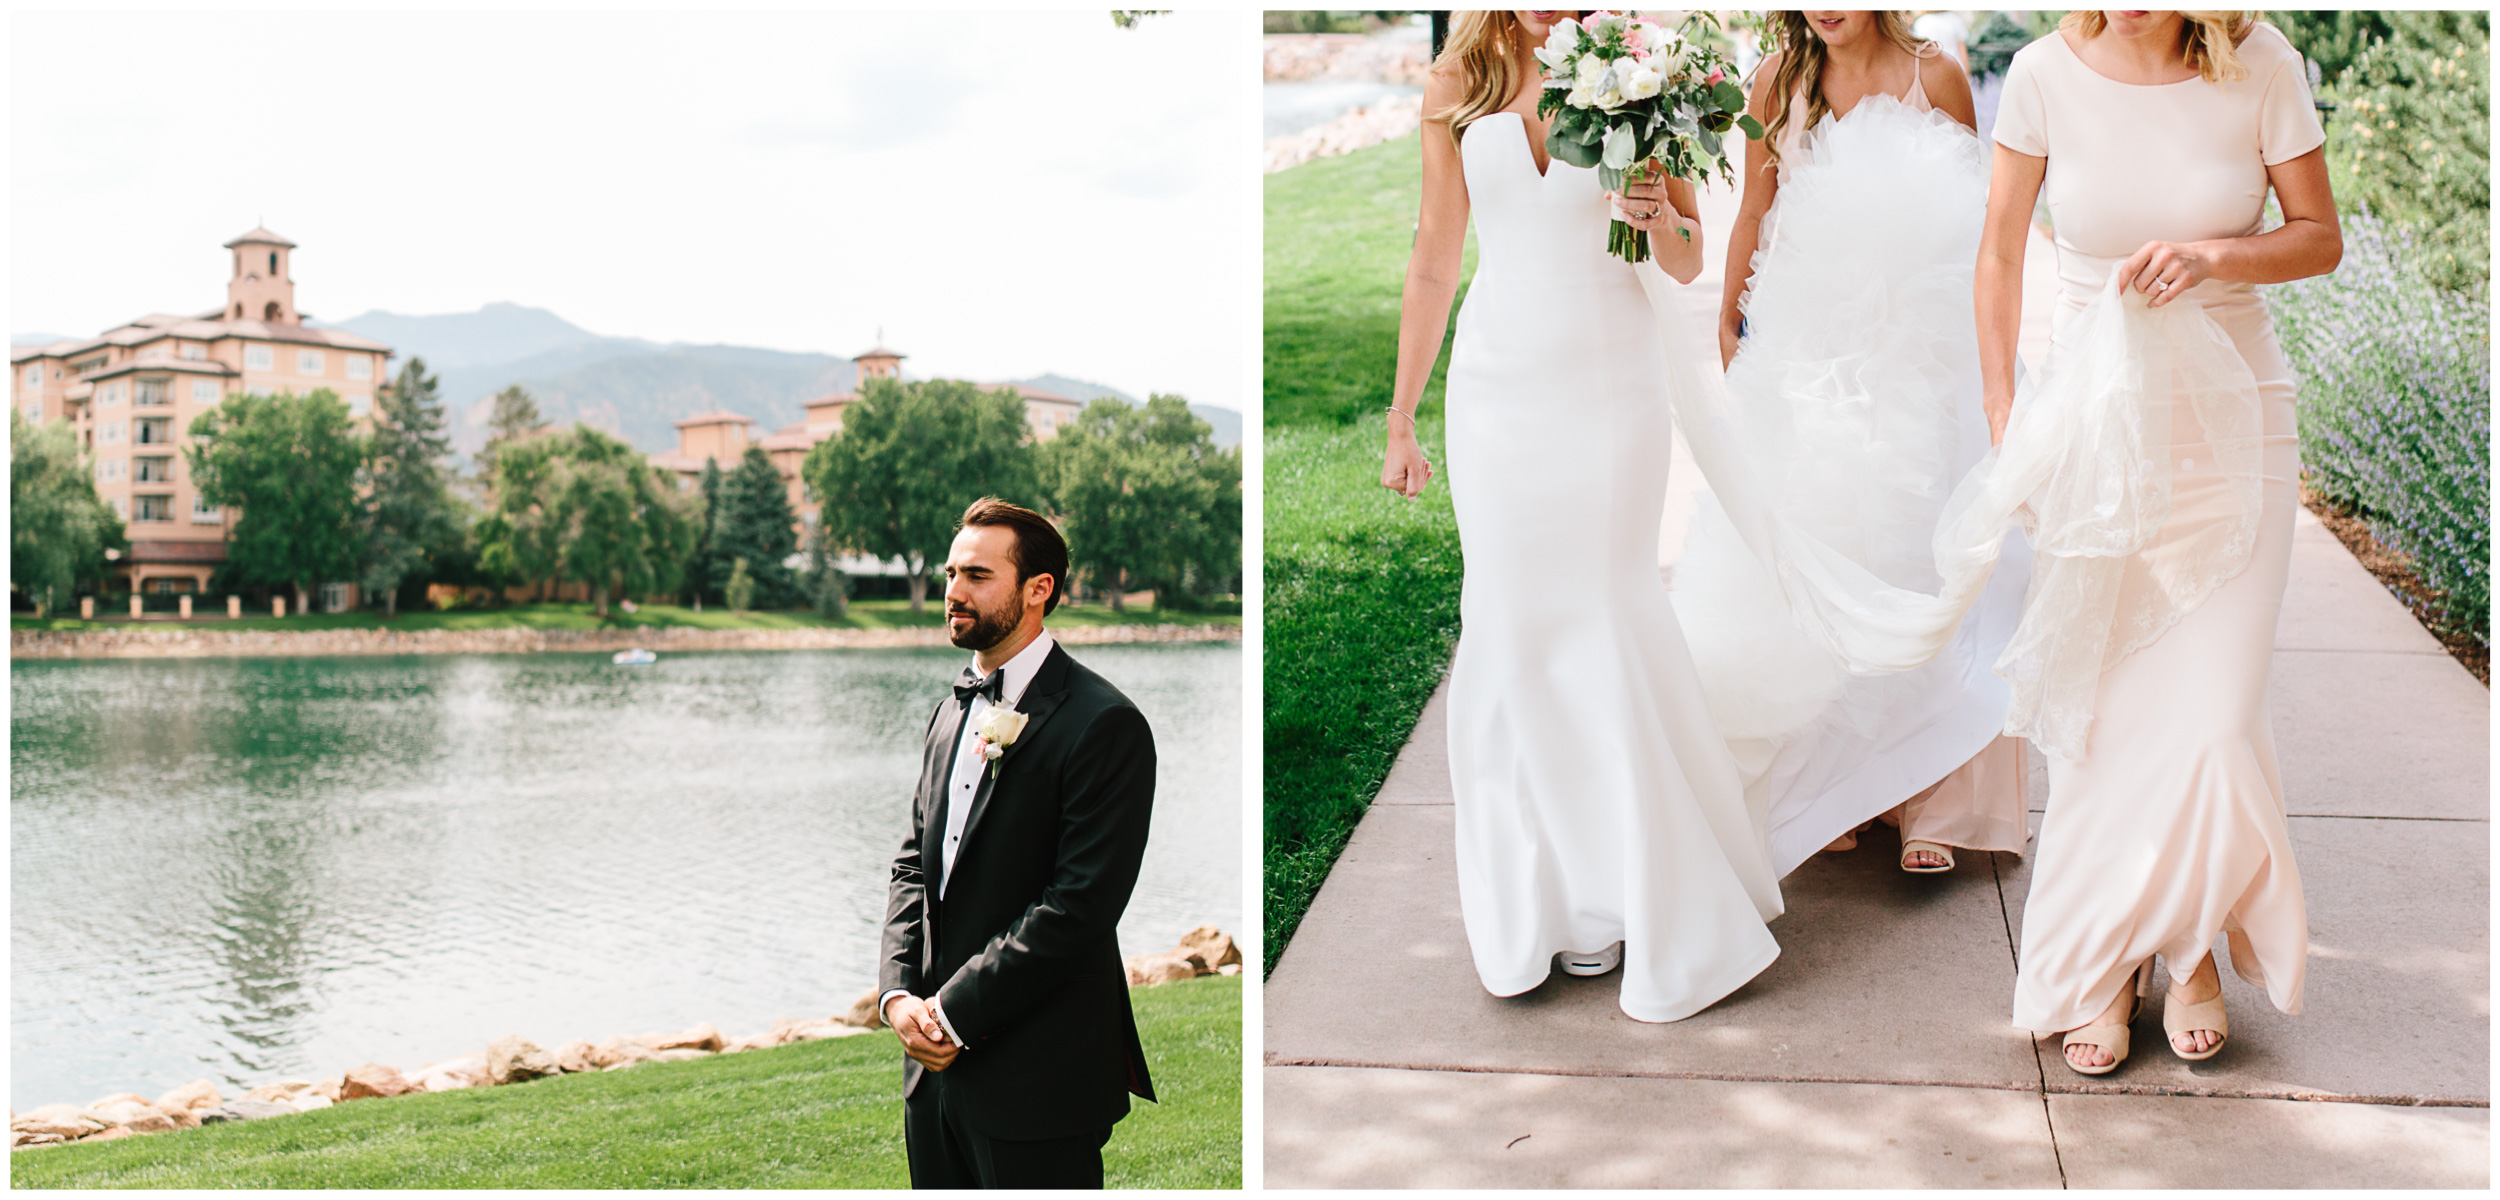 broadmoor_wedding_20.jpg